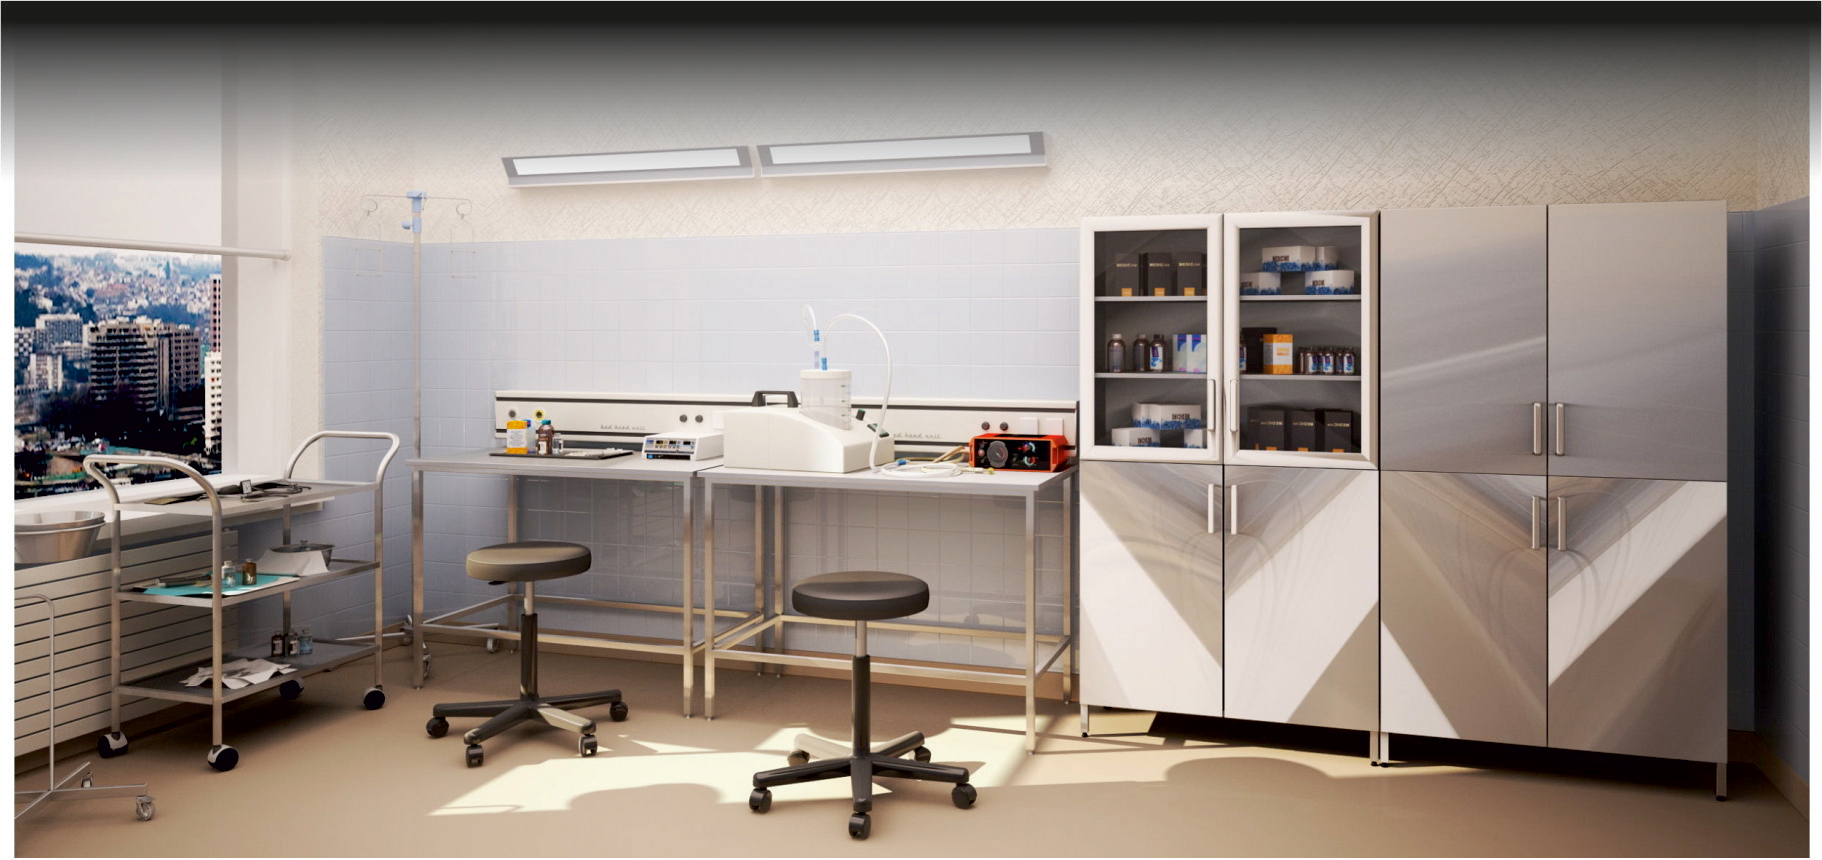 All StaInless Steel HospItal EquIpments